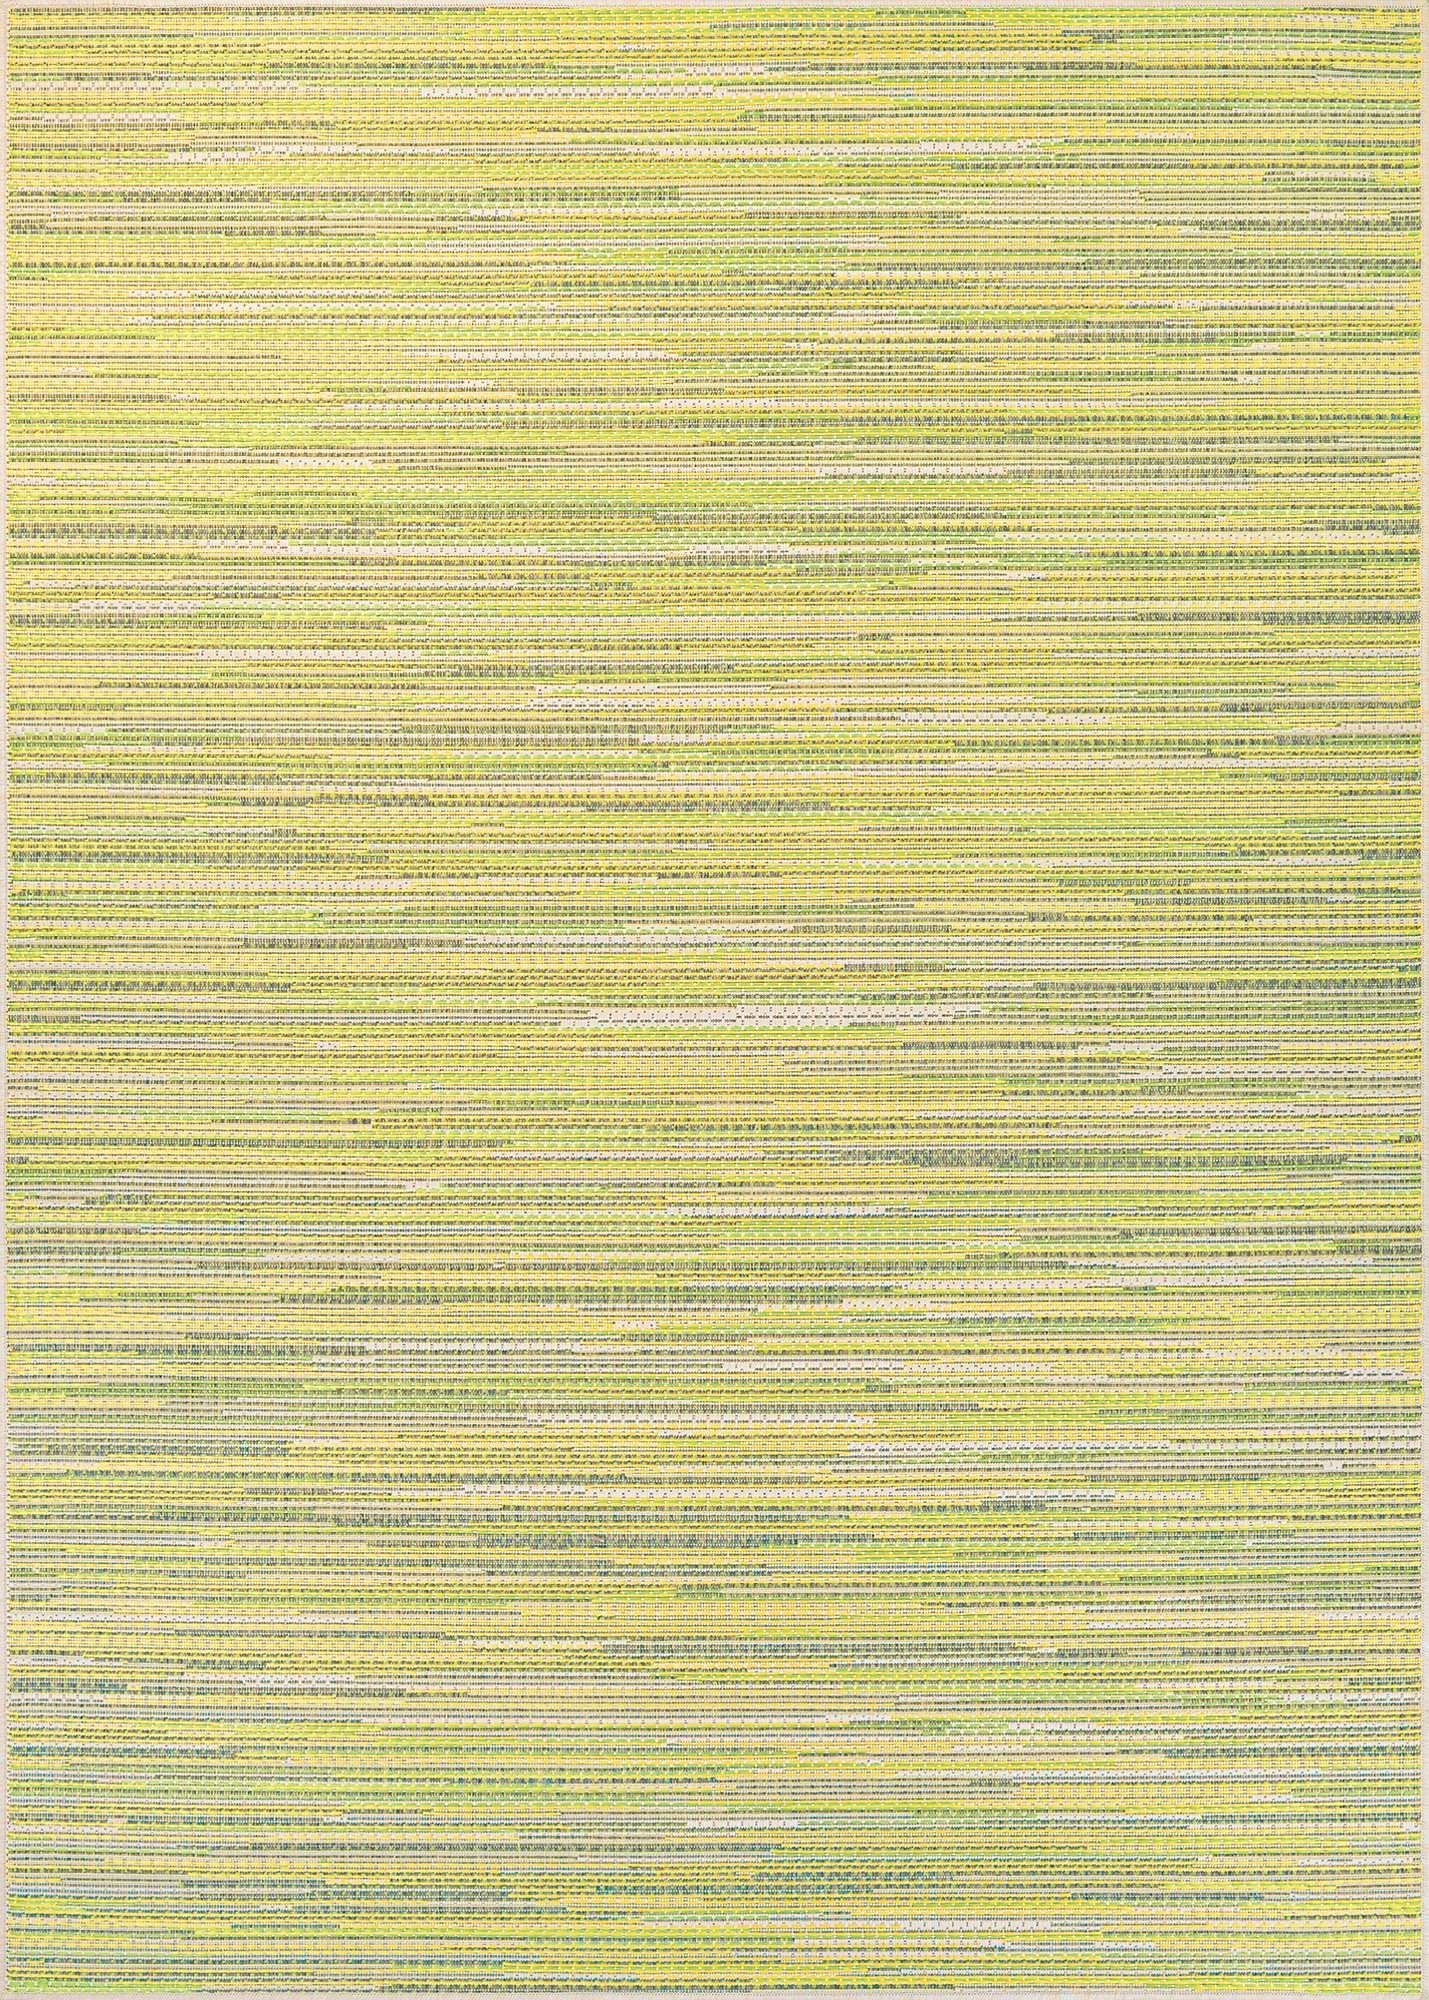 Monaco Alassio Lemon Outdoor Rugs-Rug Shop and More